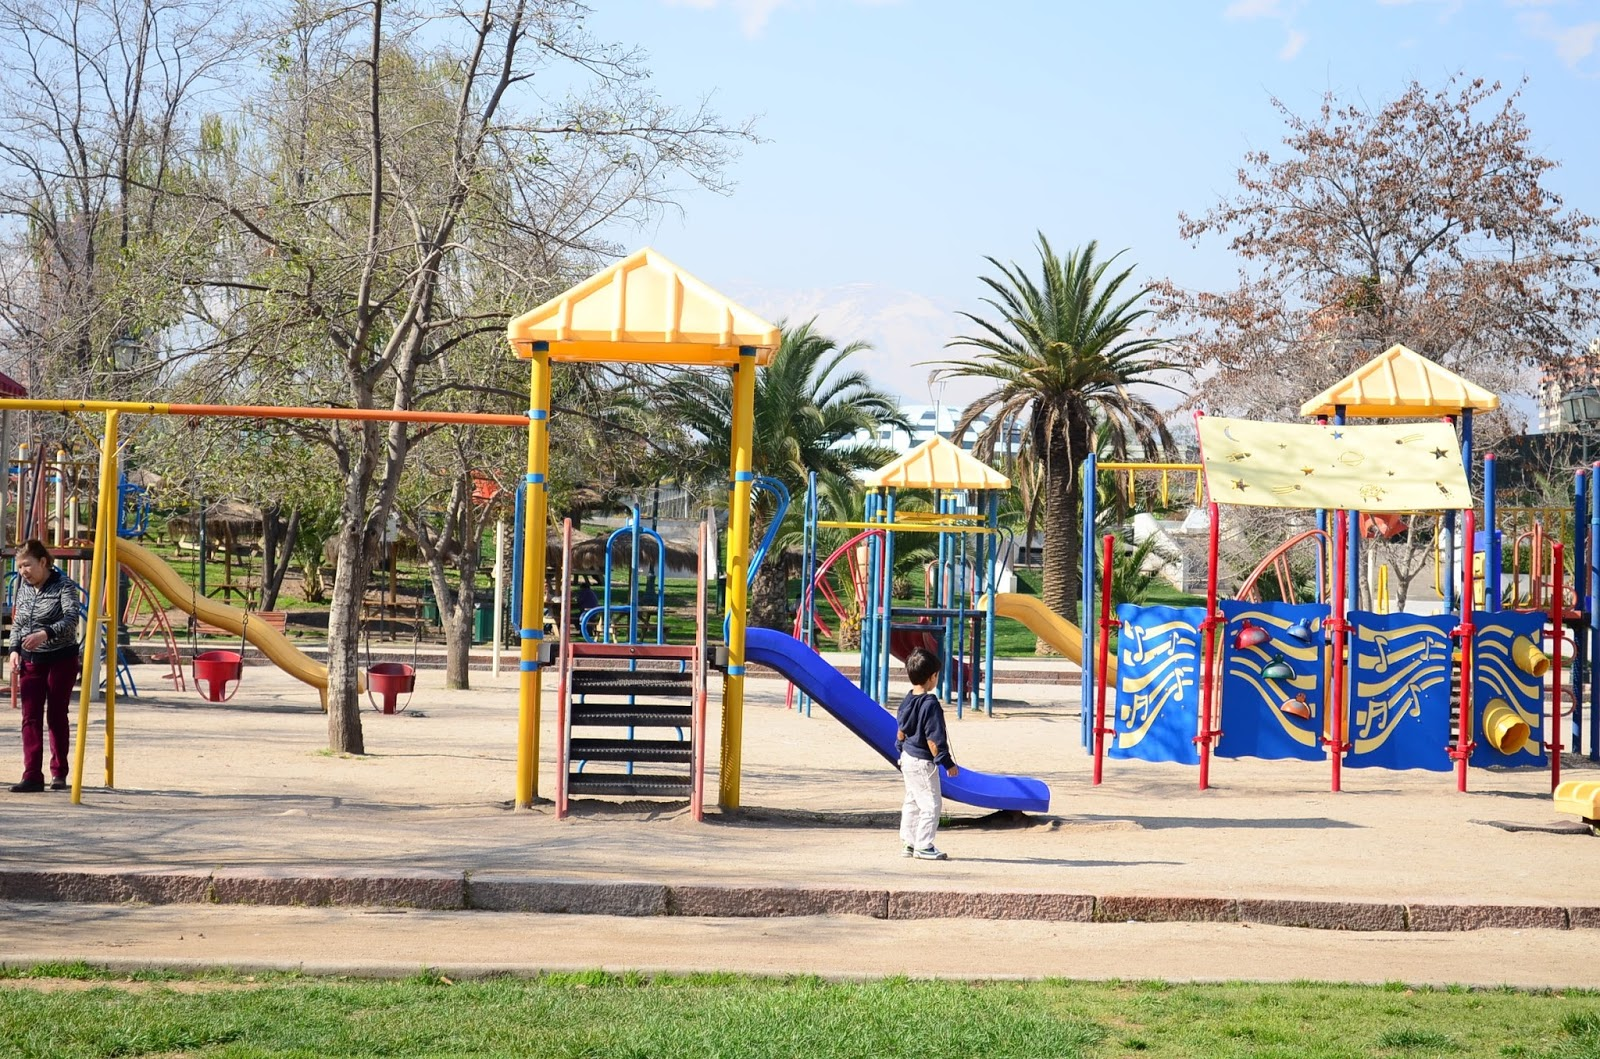 The Practical Mom: Santiago, Chile (Show Me Your Neighbourhood Around the World Series)